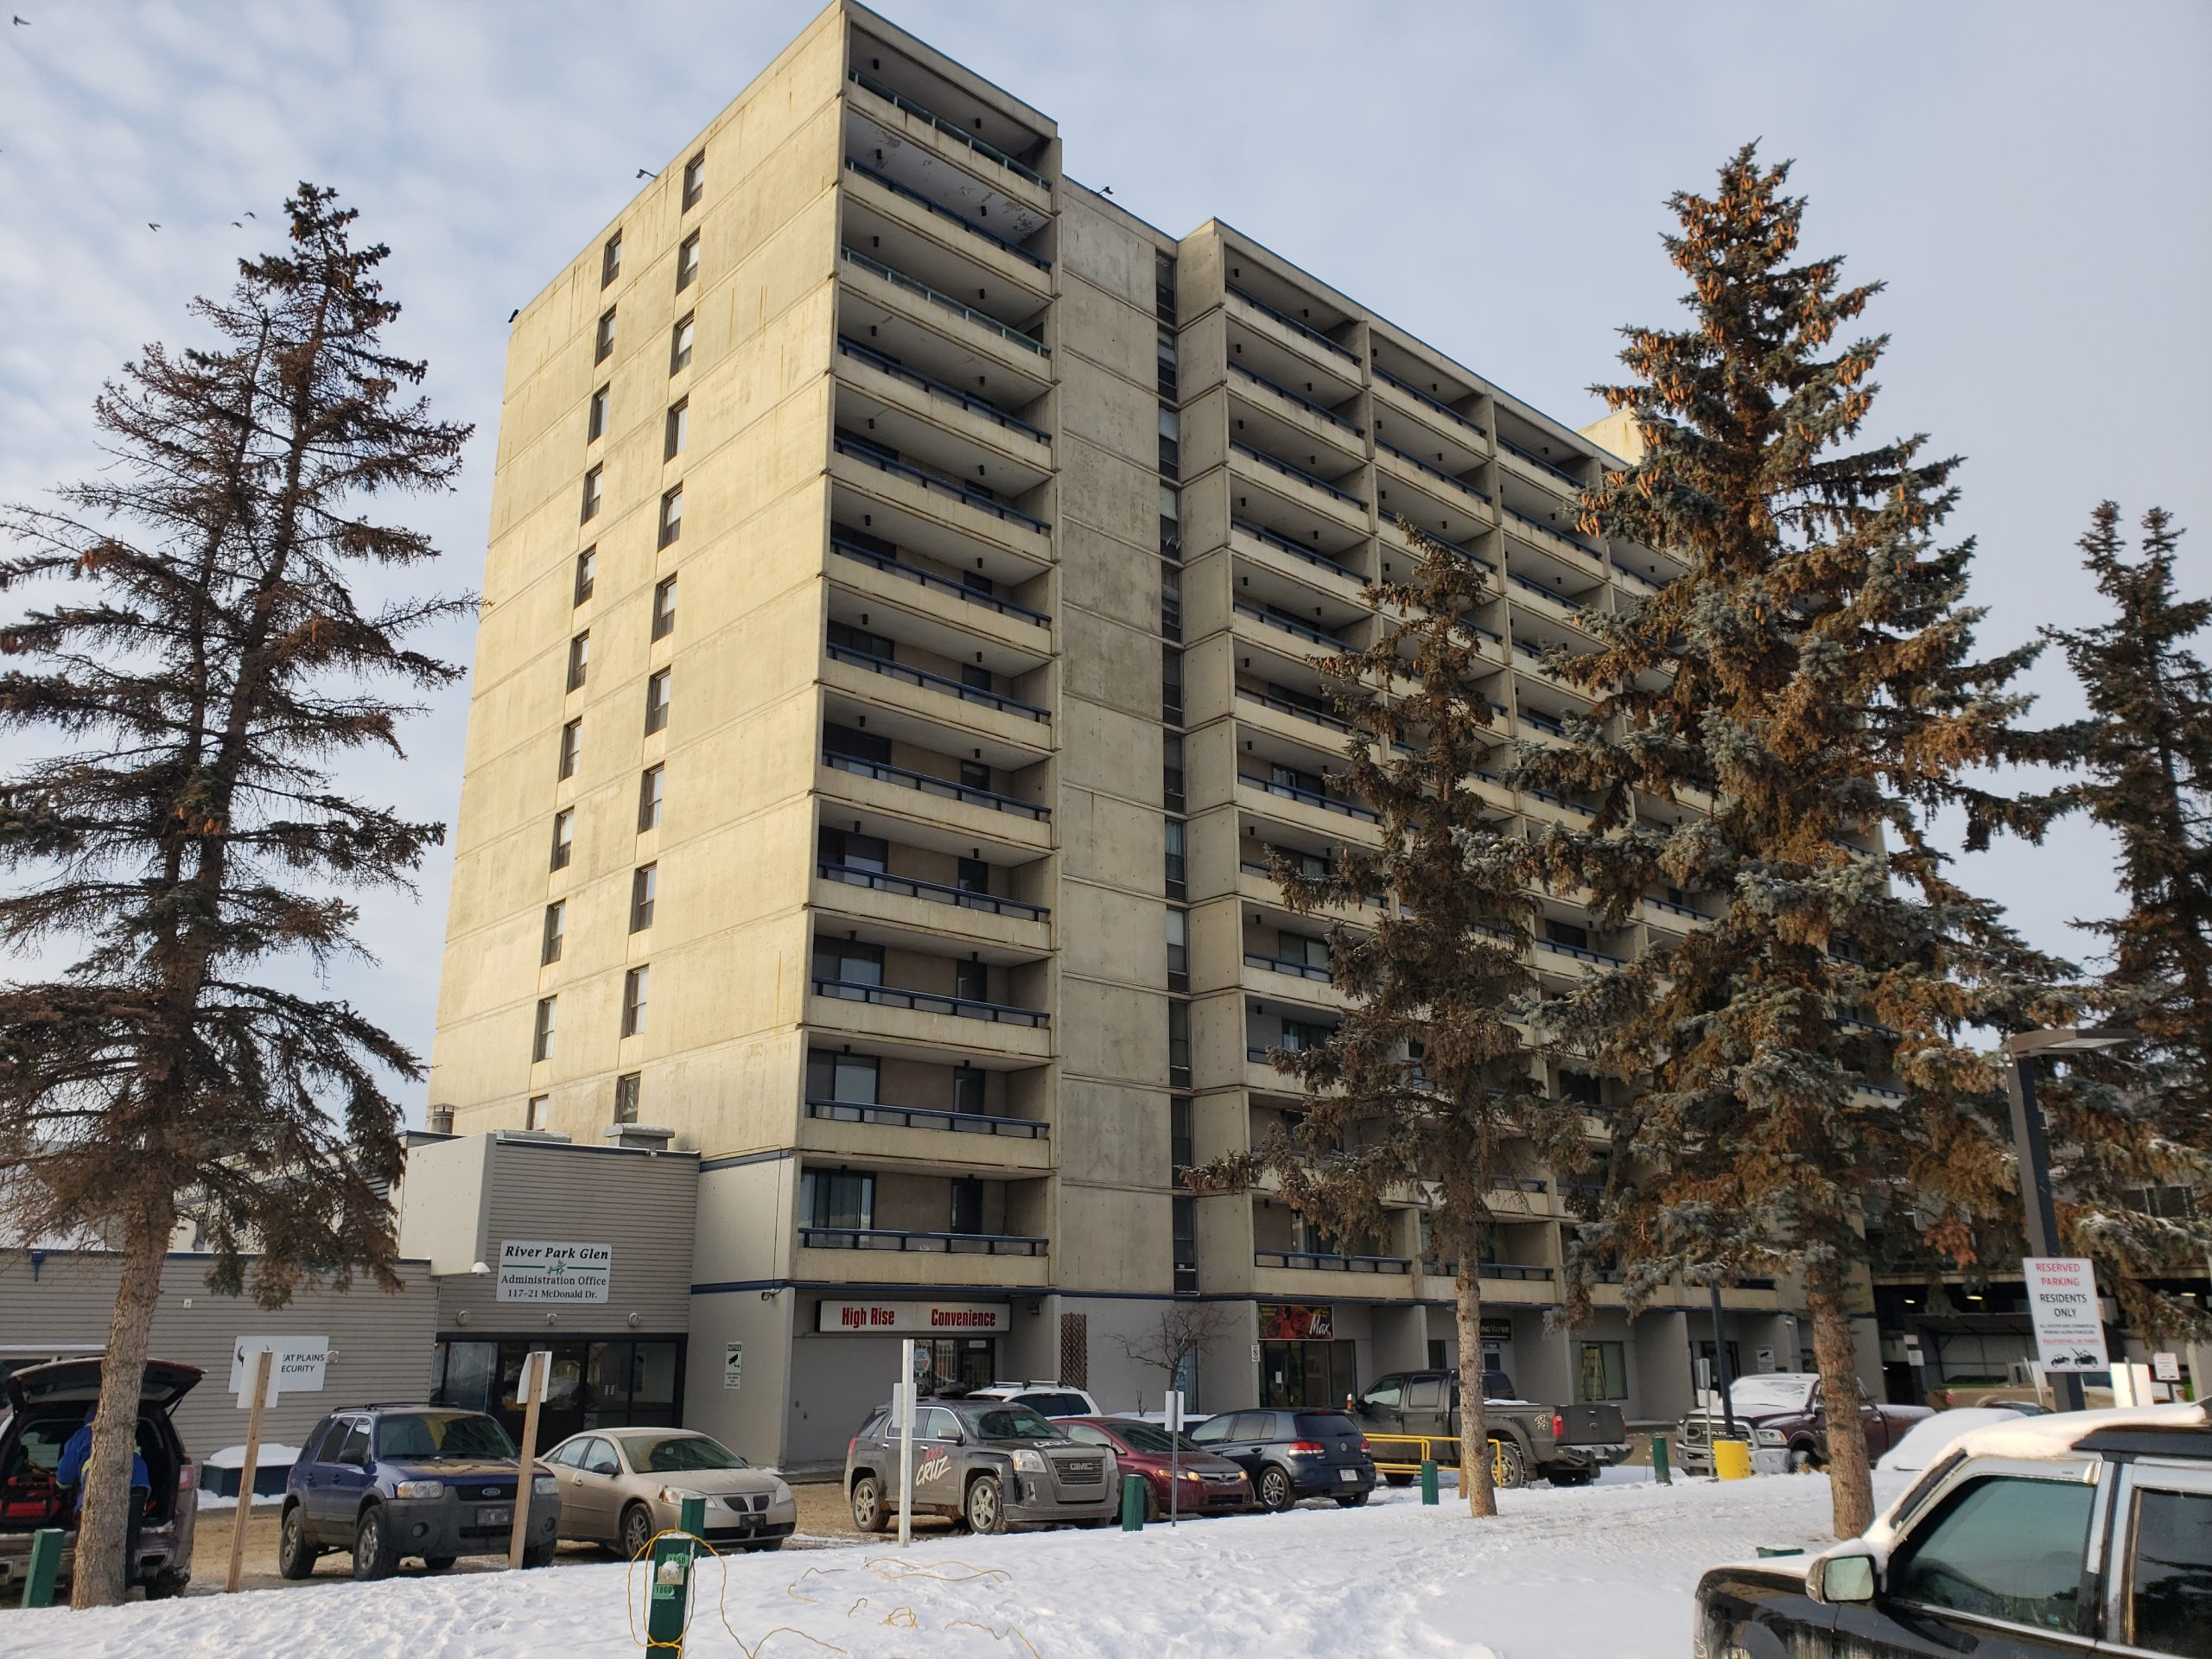 'Like A Horror Movie': Cockroach Infestation Driving Tenants From Syncrude Towers